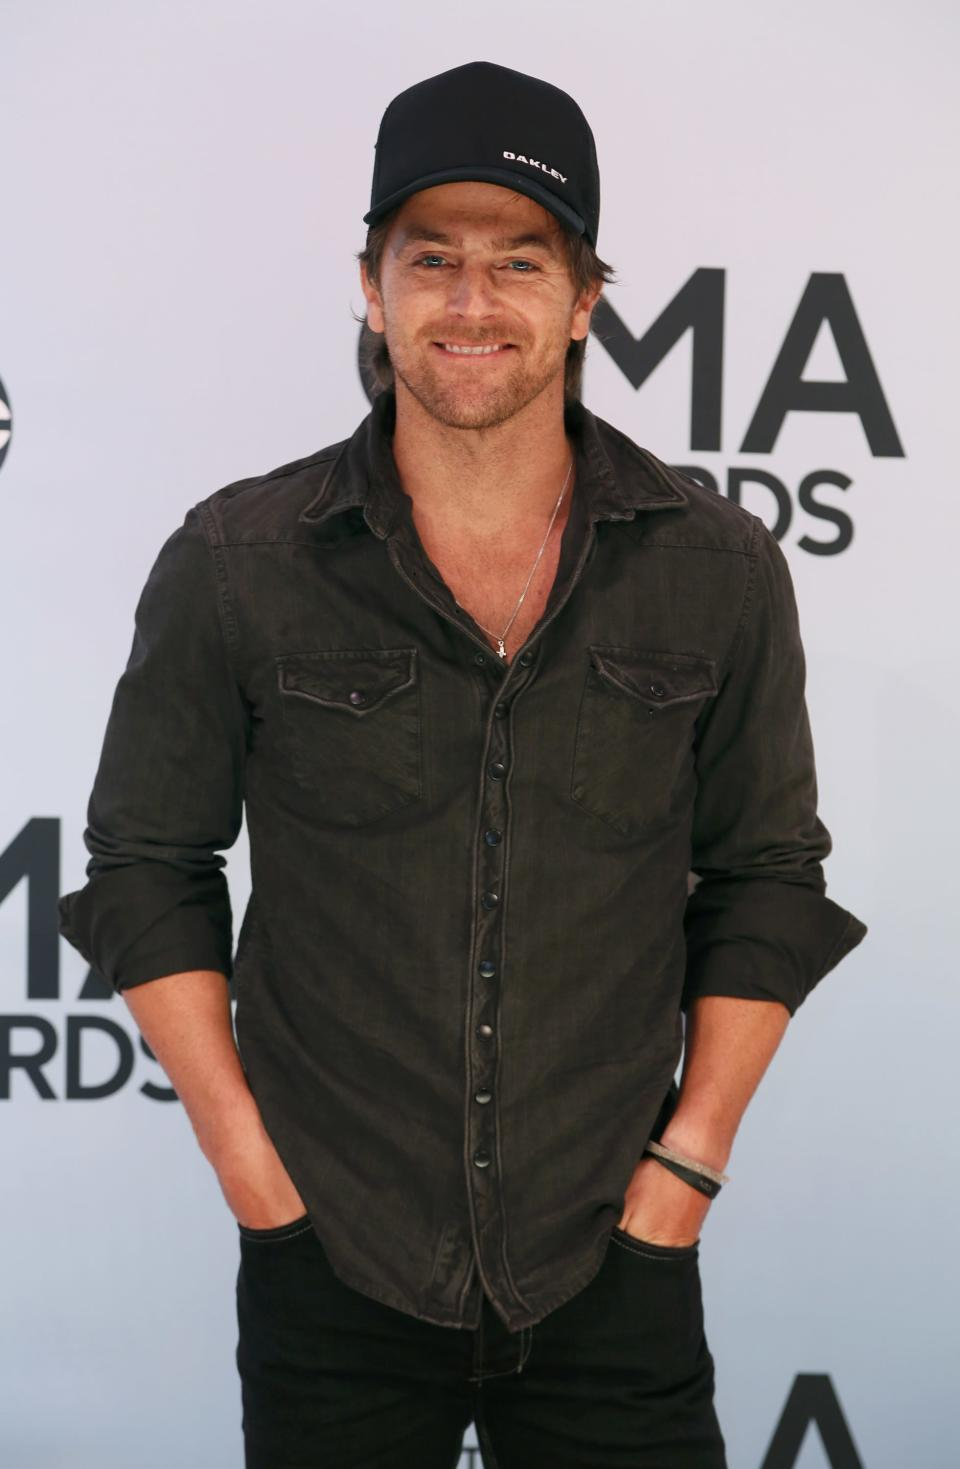 Singer Kip Moore arrives at the 47th Country Music Association Awards in Nashville, Tennessee November 6, 2013. REUTERS/Eric Henderson (UNITED STATES - Tags: ENTERTAINMENT)